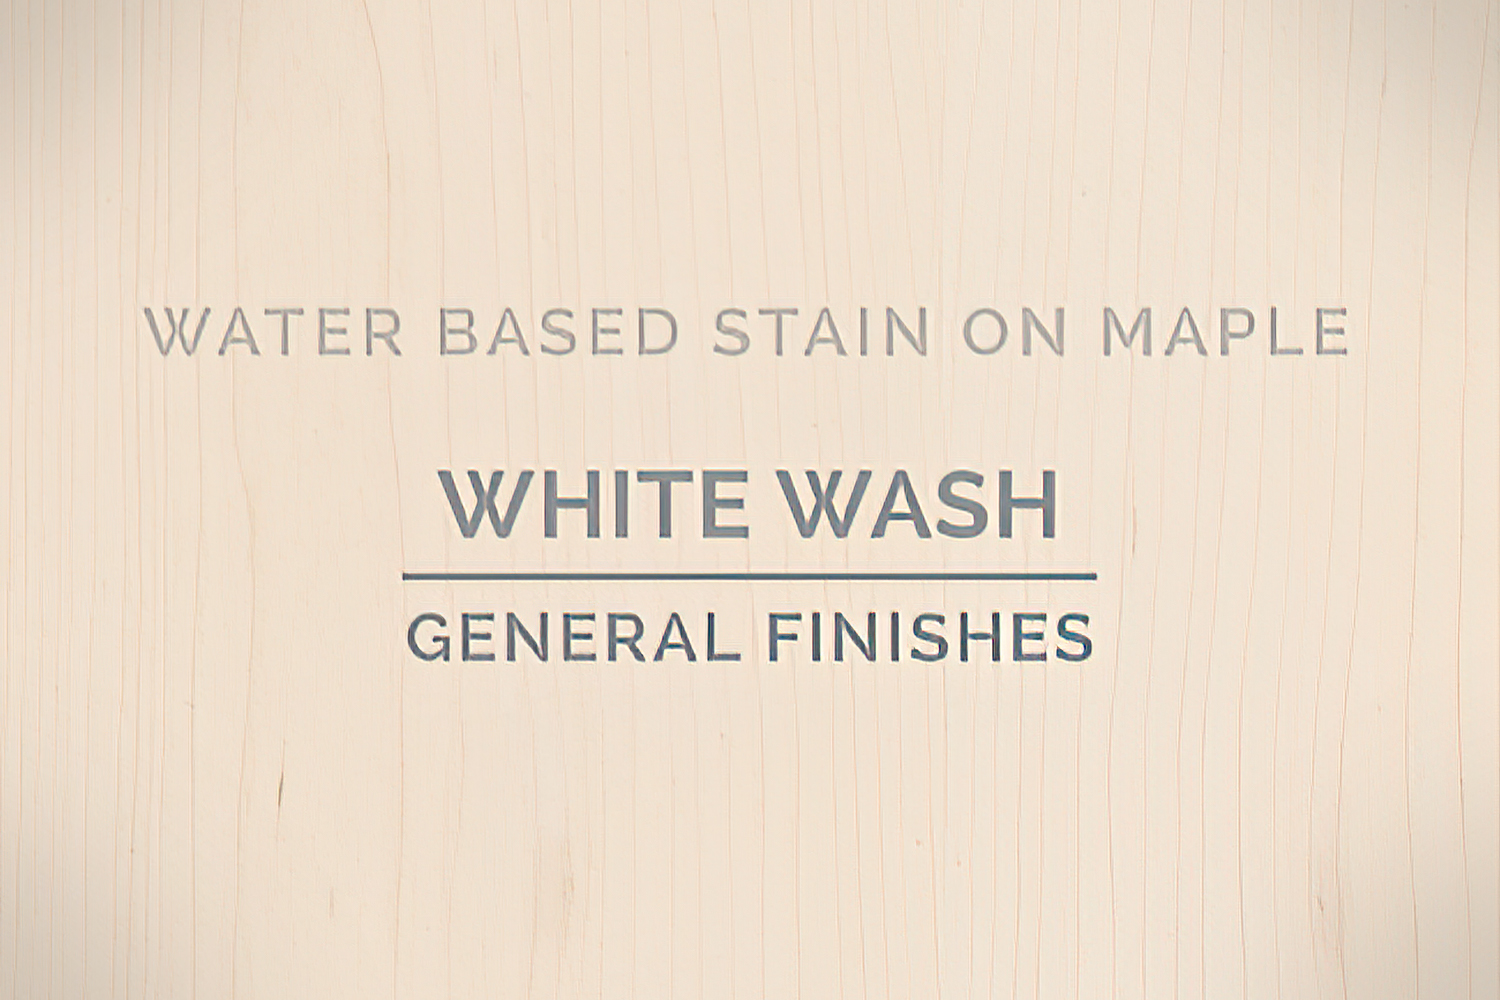 General Finishes Whitewash Stain Water Based